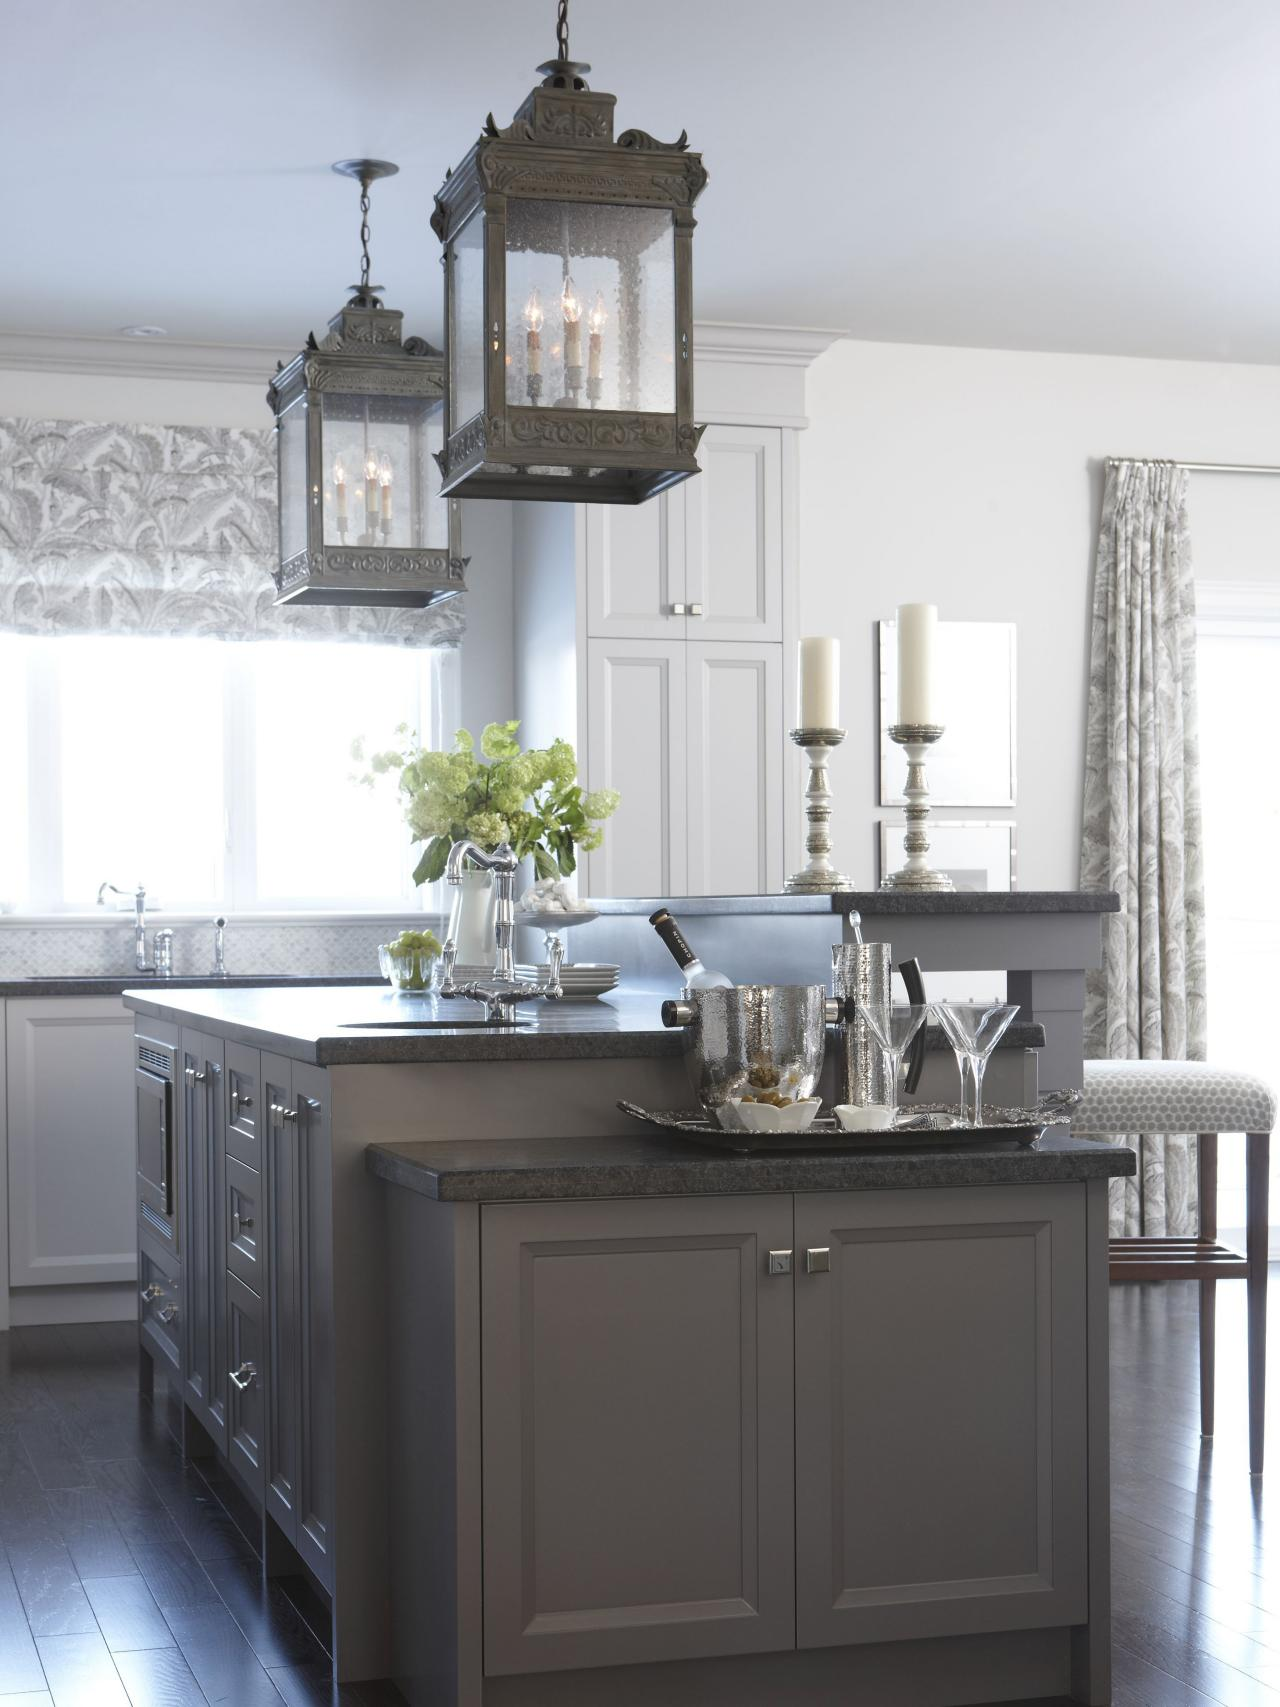 White Country Kitchen With Island